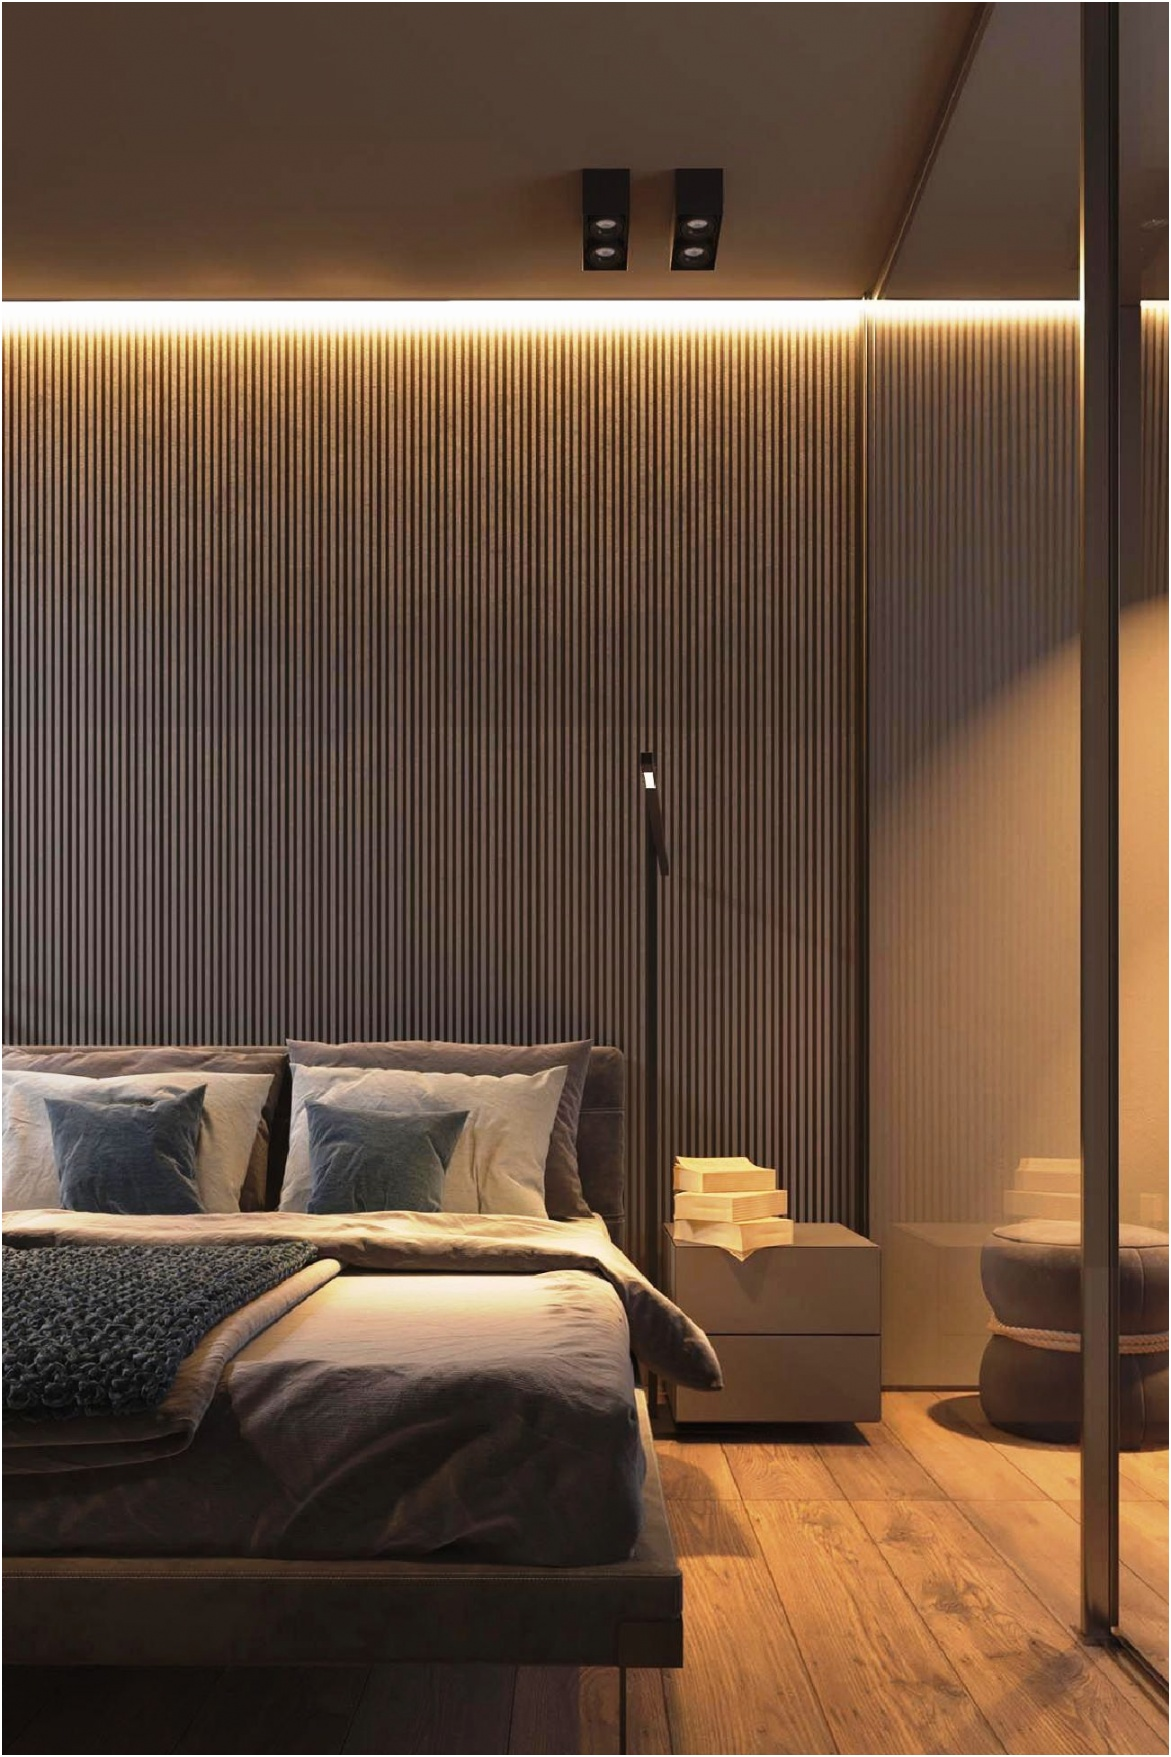 Best DIY Projects Ideas for LED Lighting Bedroom Benefit of LED Lighting 6